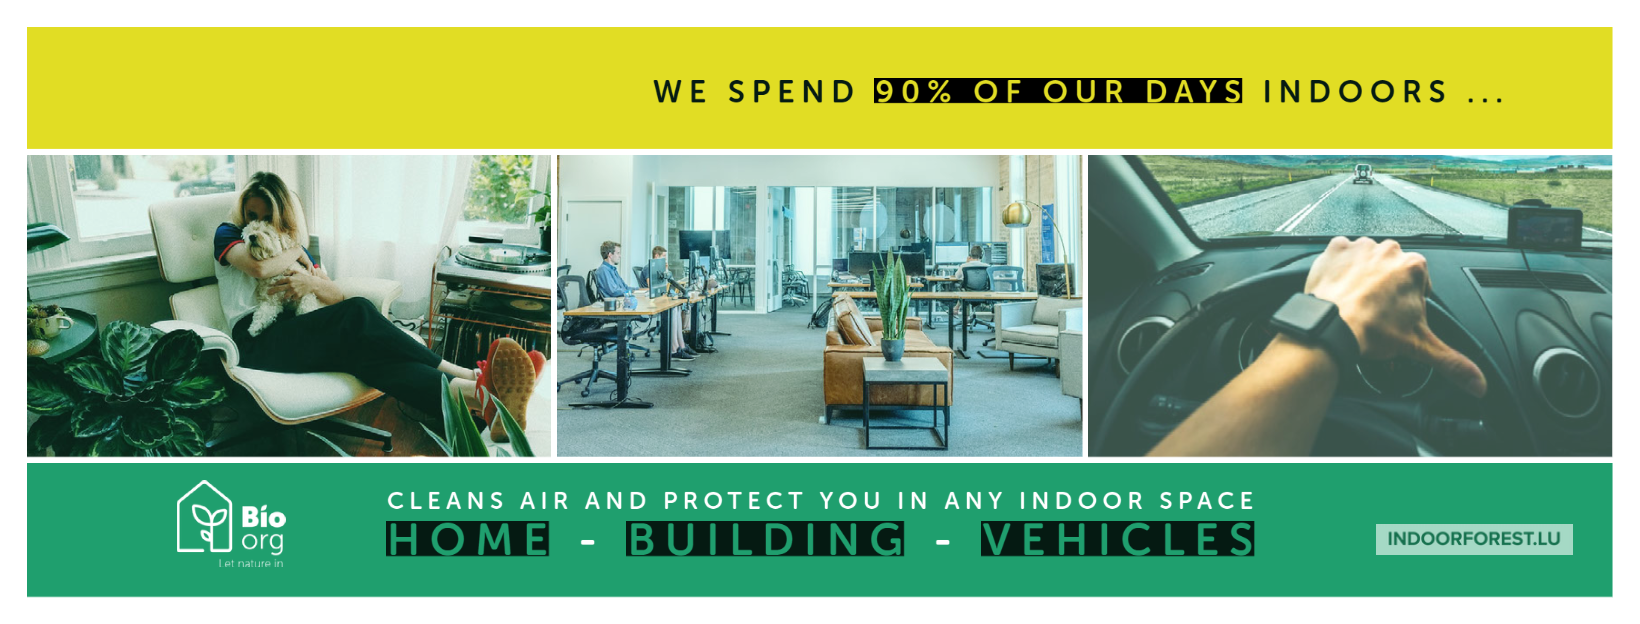 We spend 90% of our time indoors ... think about the air quality